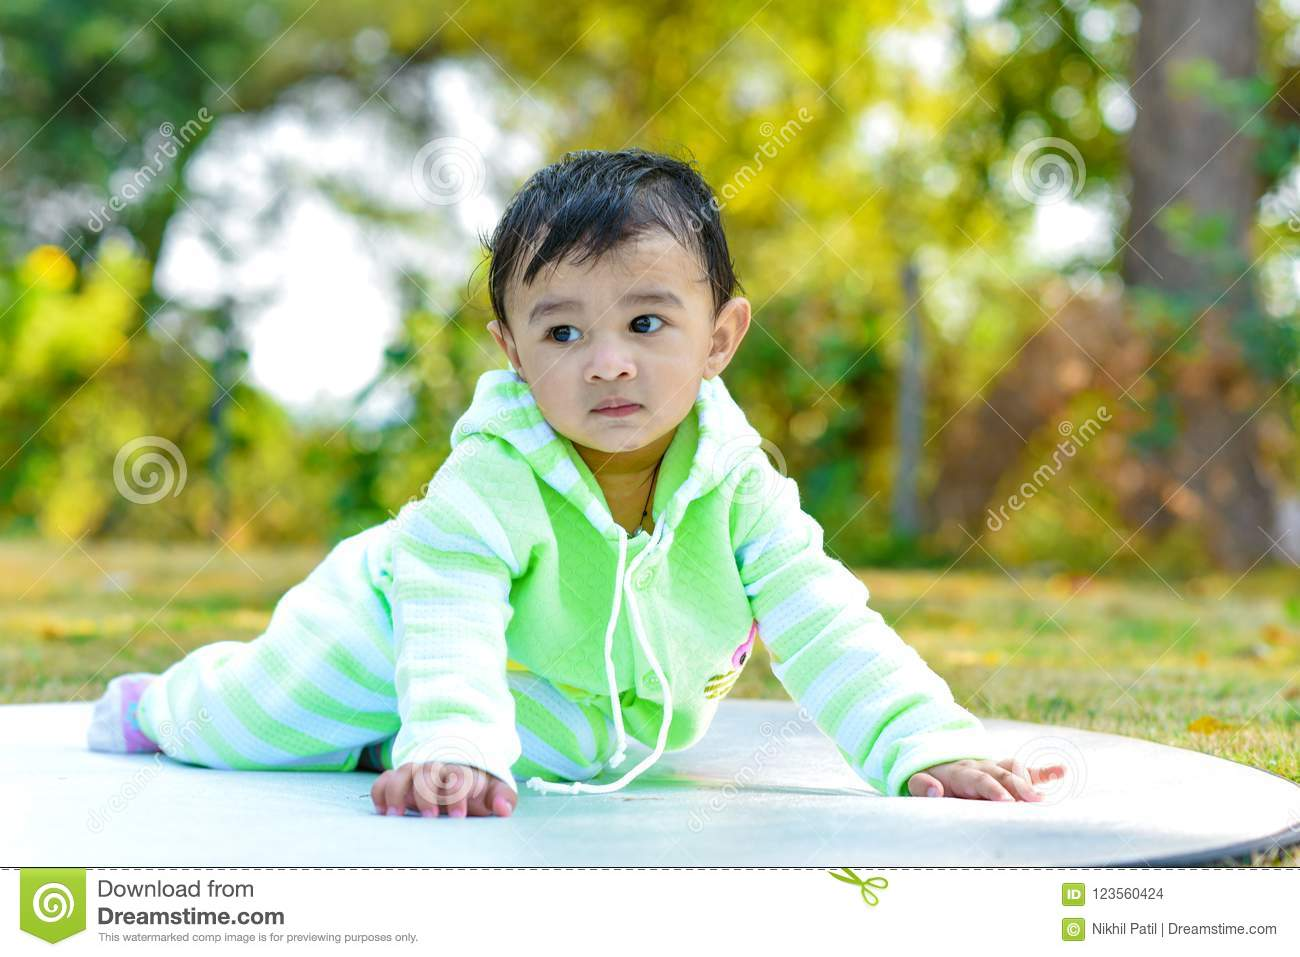 Cute Indian Baby Boy Playing At Garden Stock Photo Image Of Beauty Green 123560424